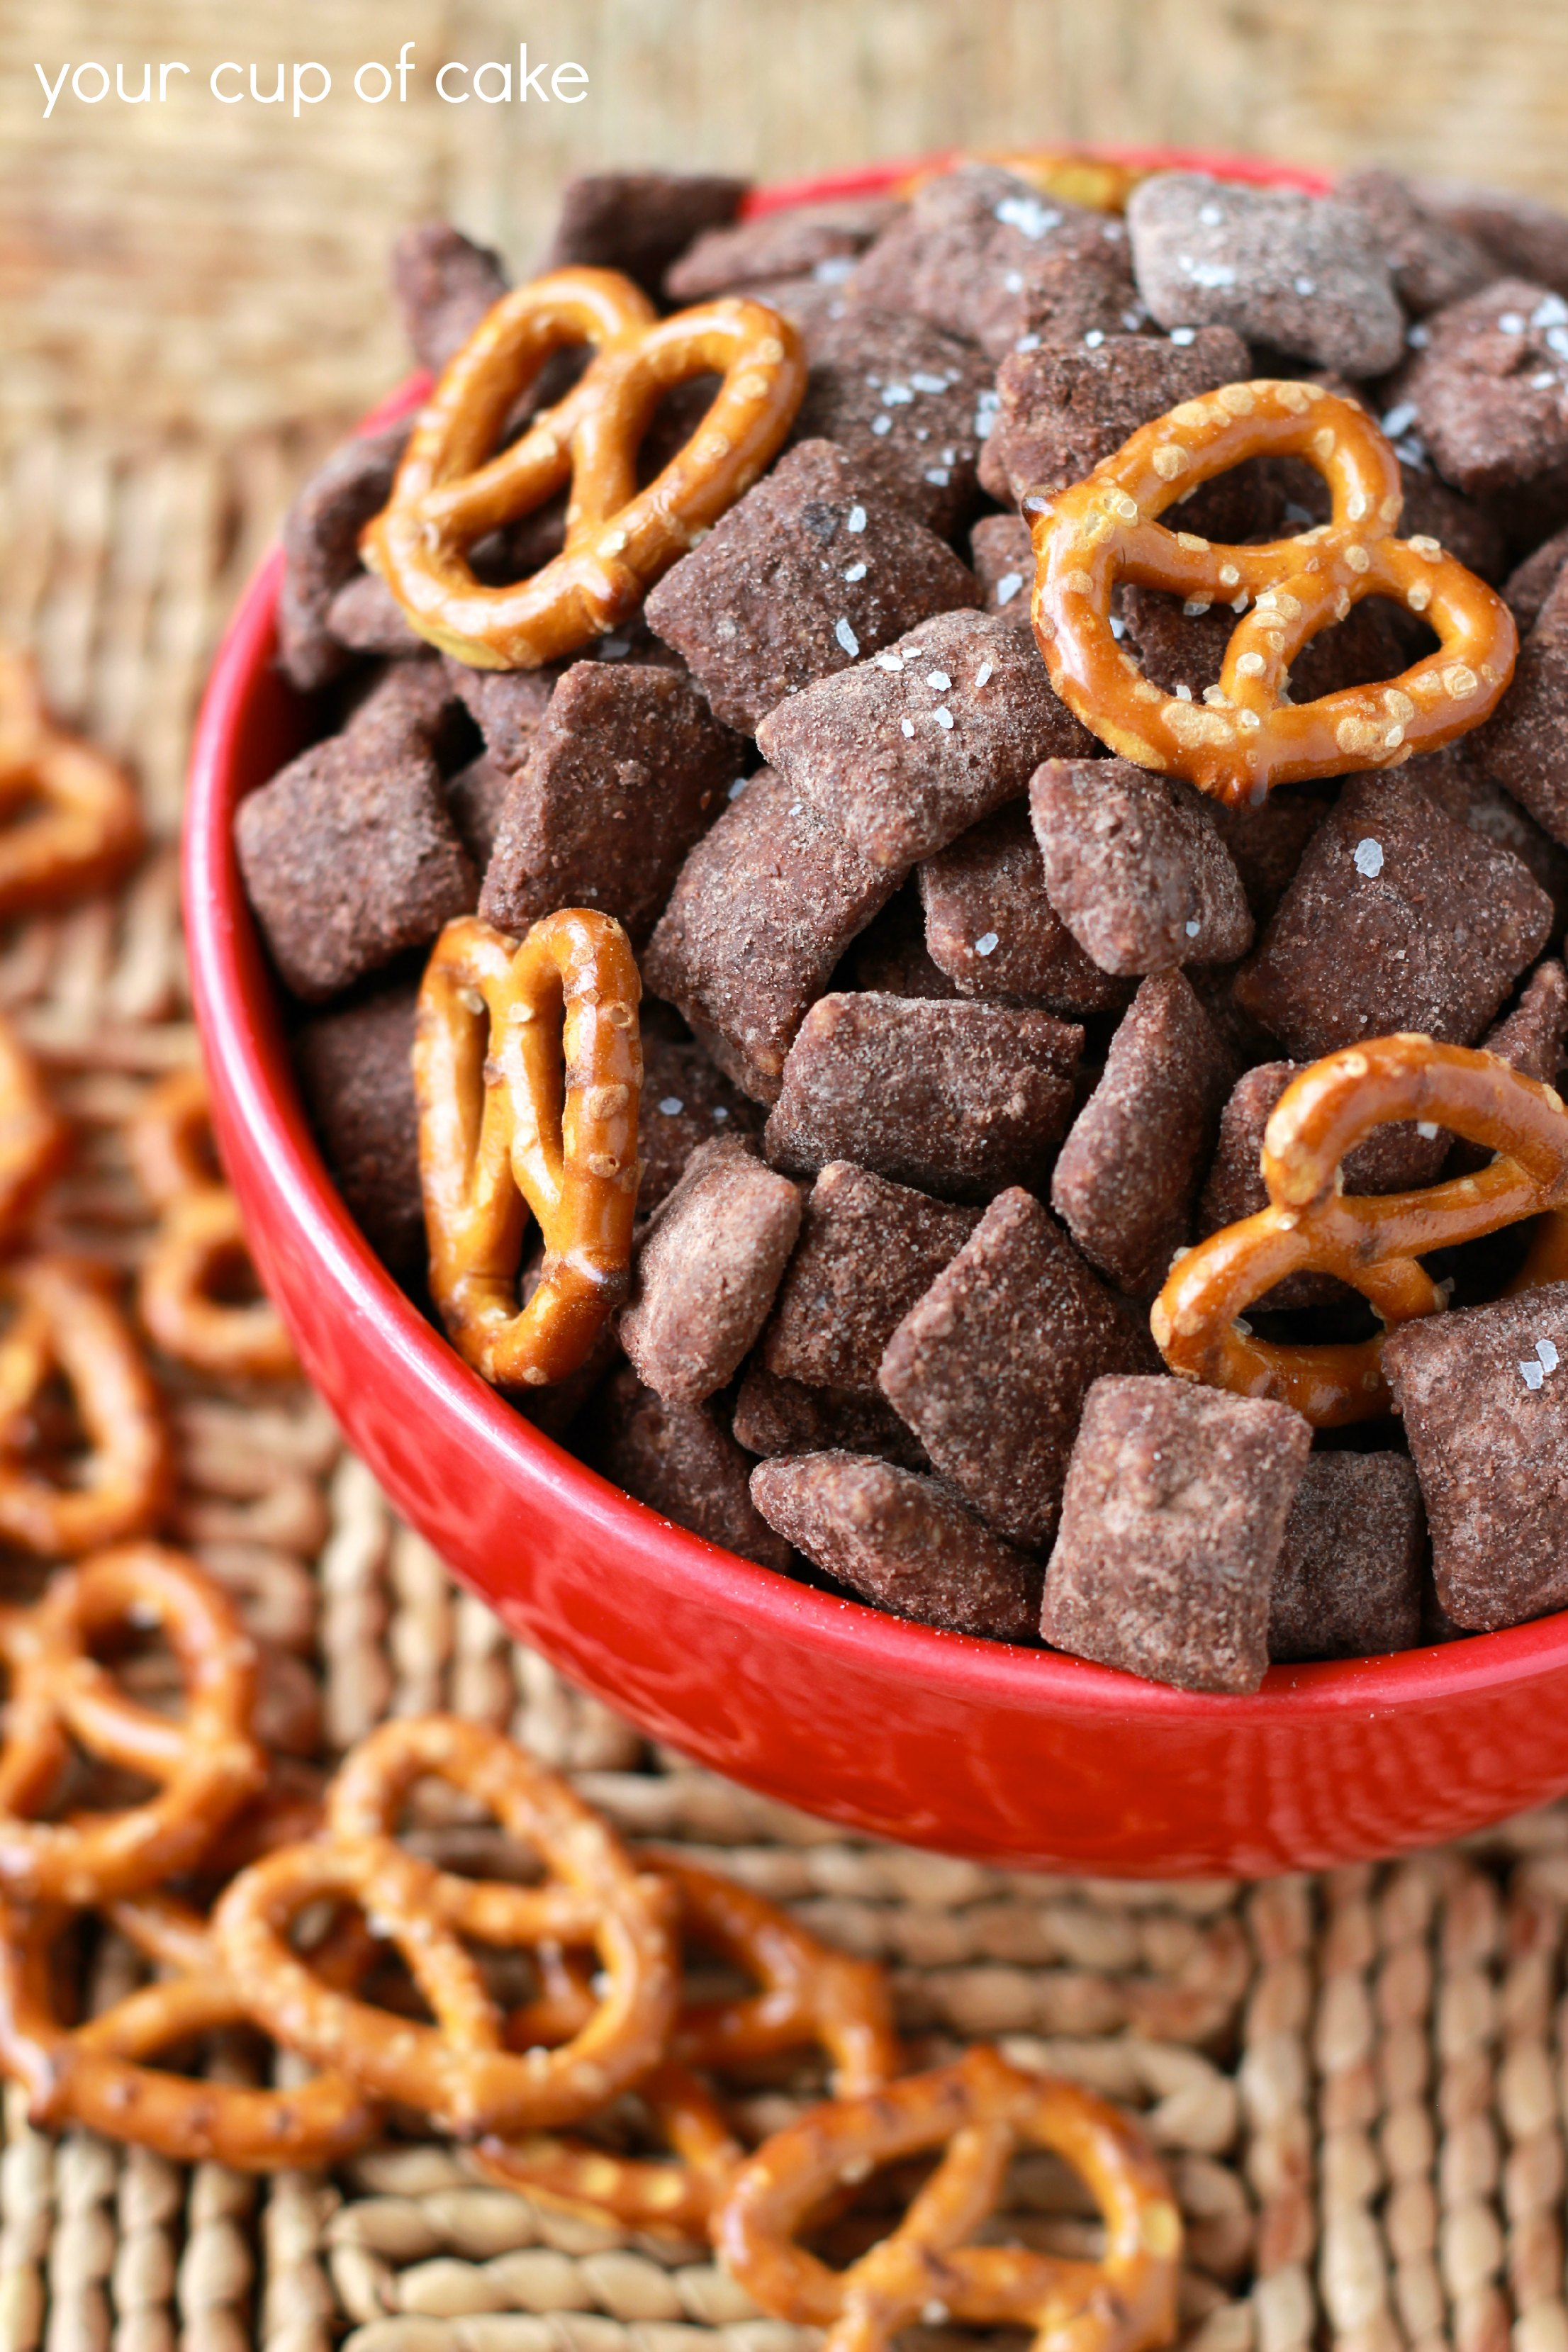 Salted Chocolate Puppy Chow with Pretzels